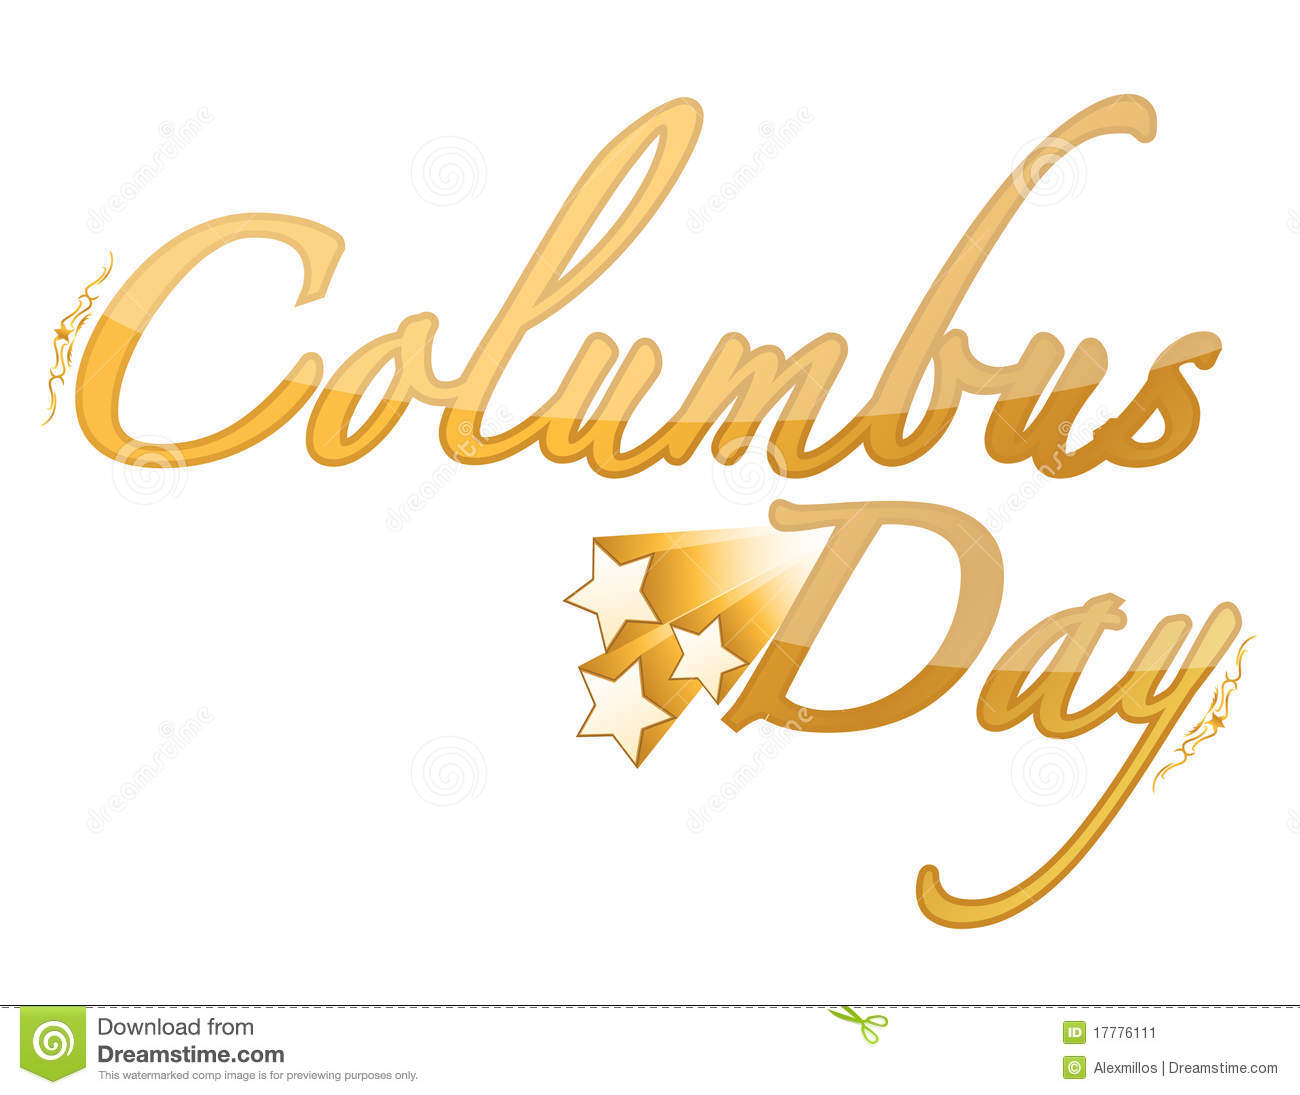 Golden Columbus Day sign isolated over white.